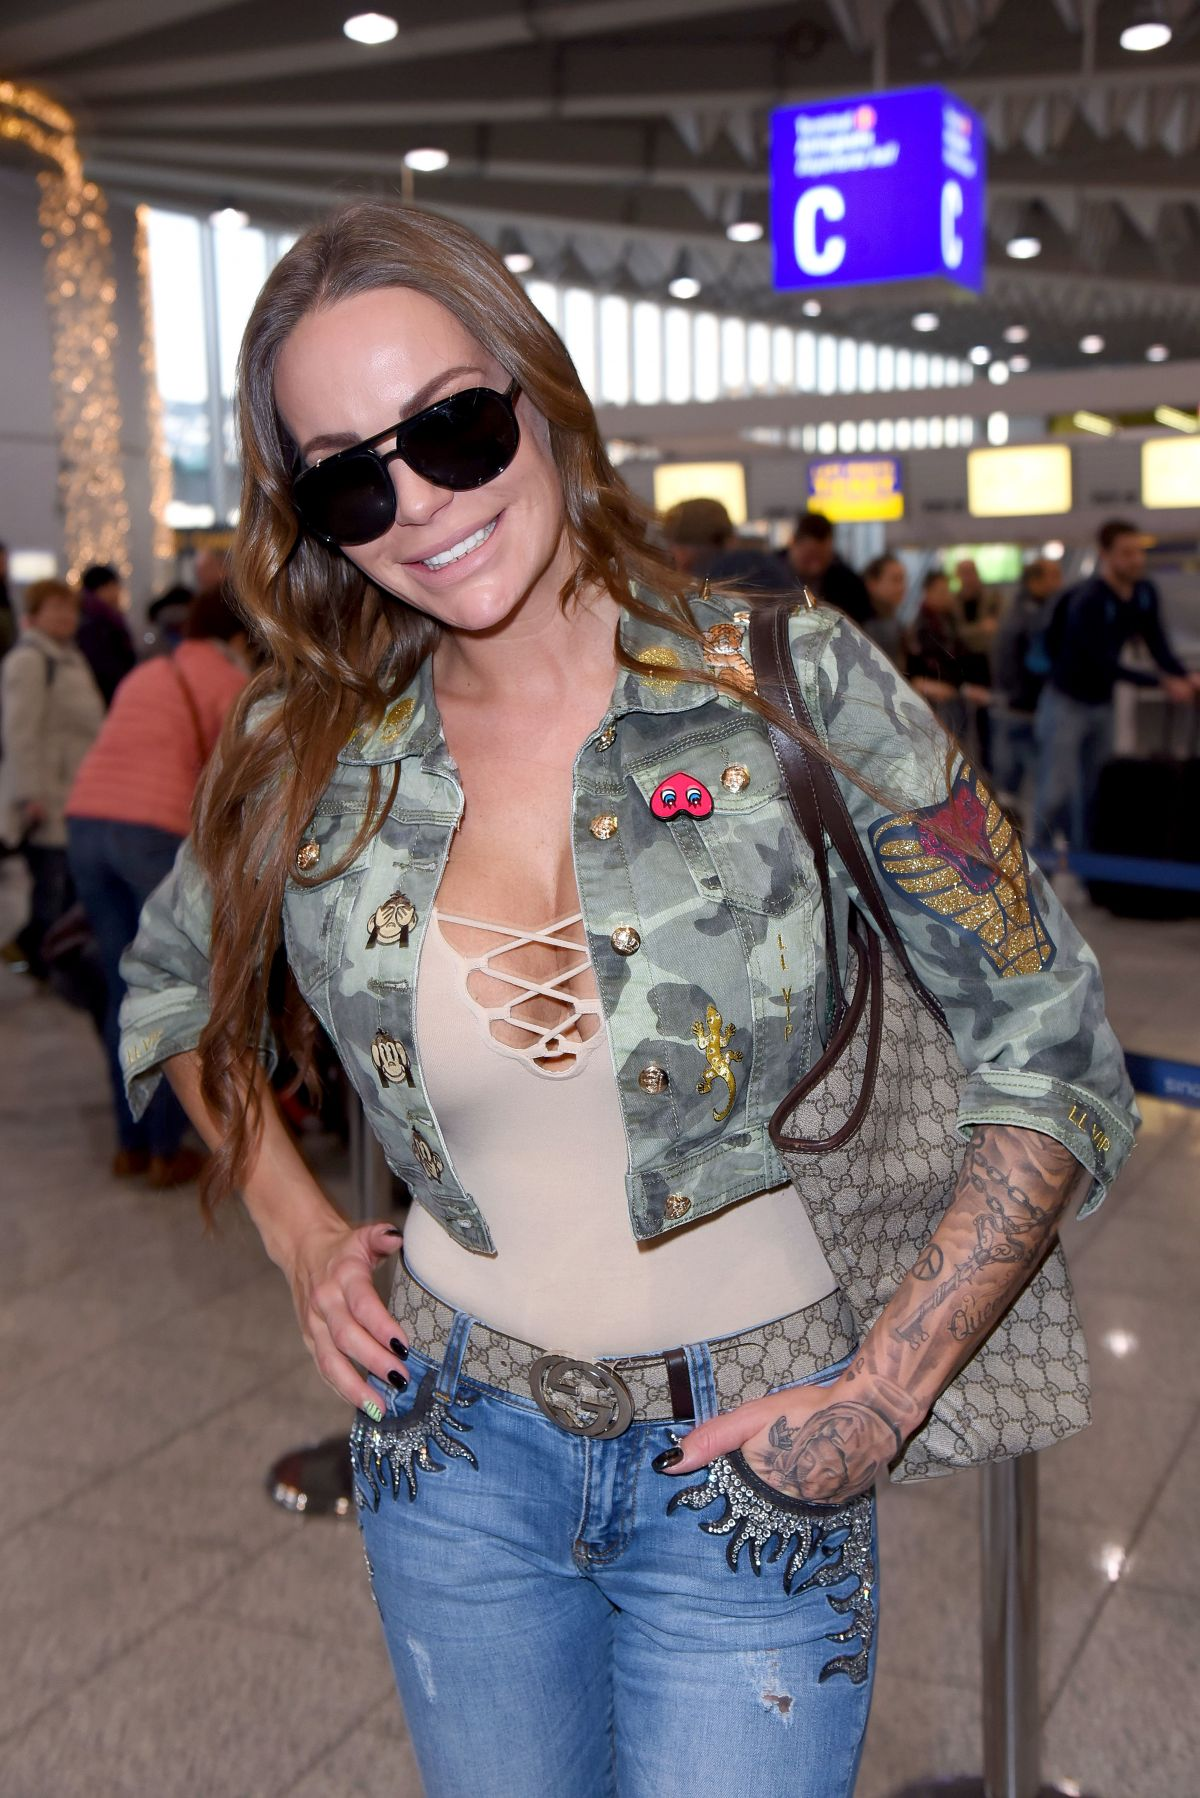 GINA LISA LOHFINK at Airport in Frankfurt am Main 01/06/2017